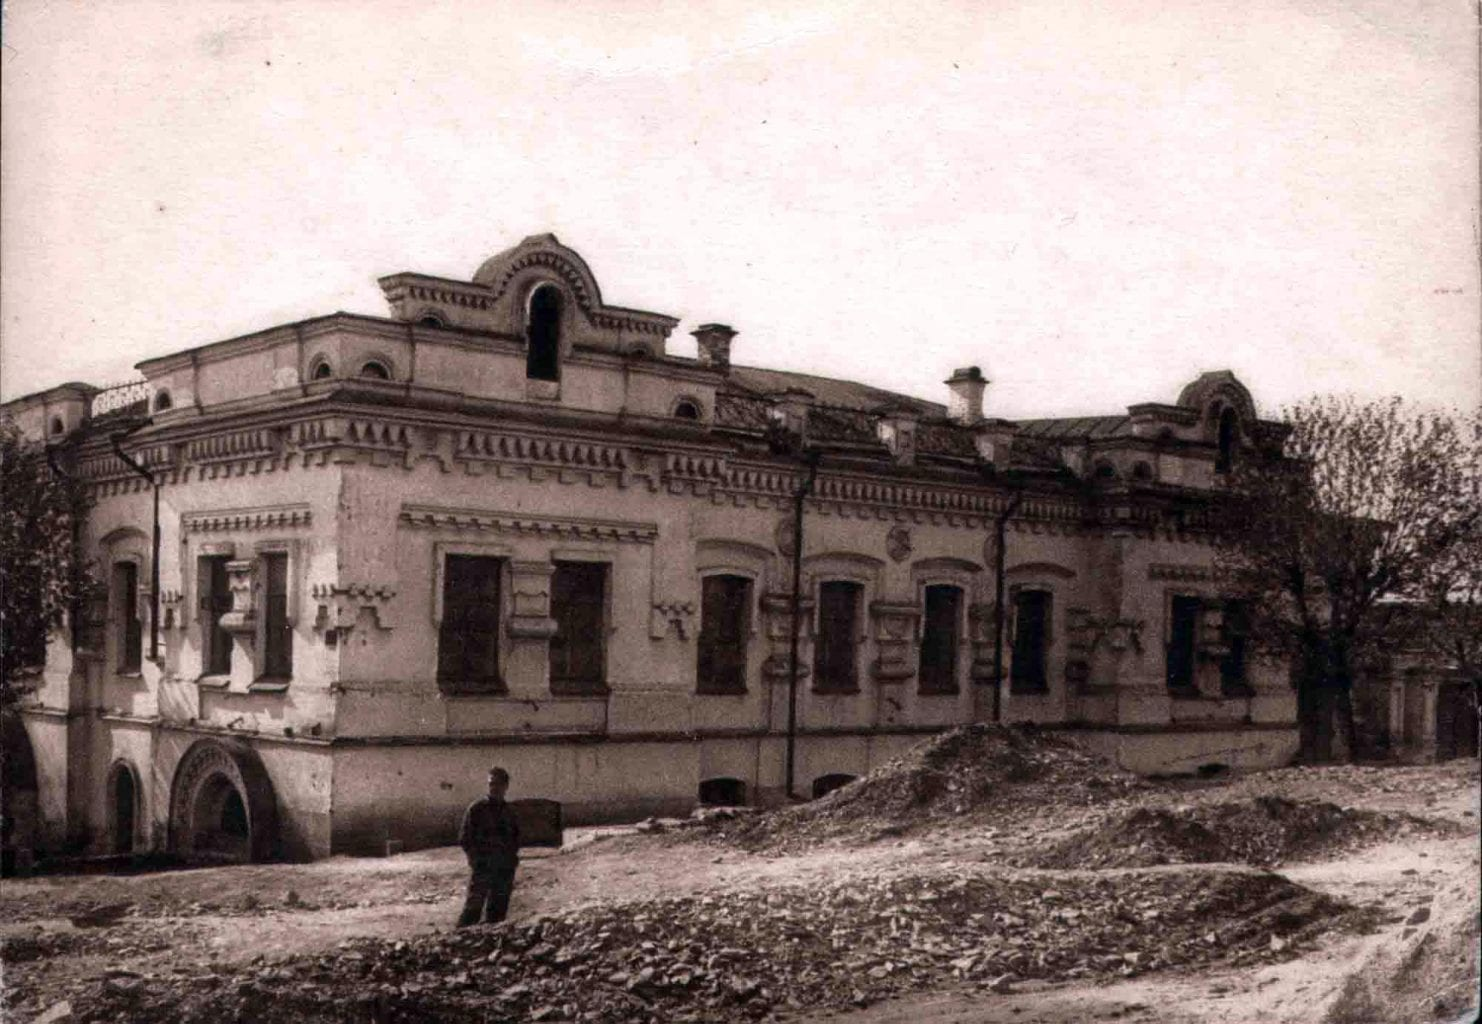 Ipatiev's House, the place where the Romanovs were killed. Credit: Wikipedia